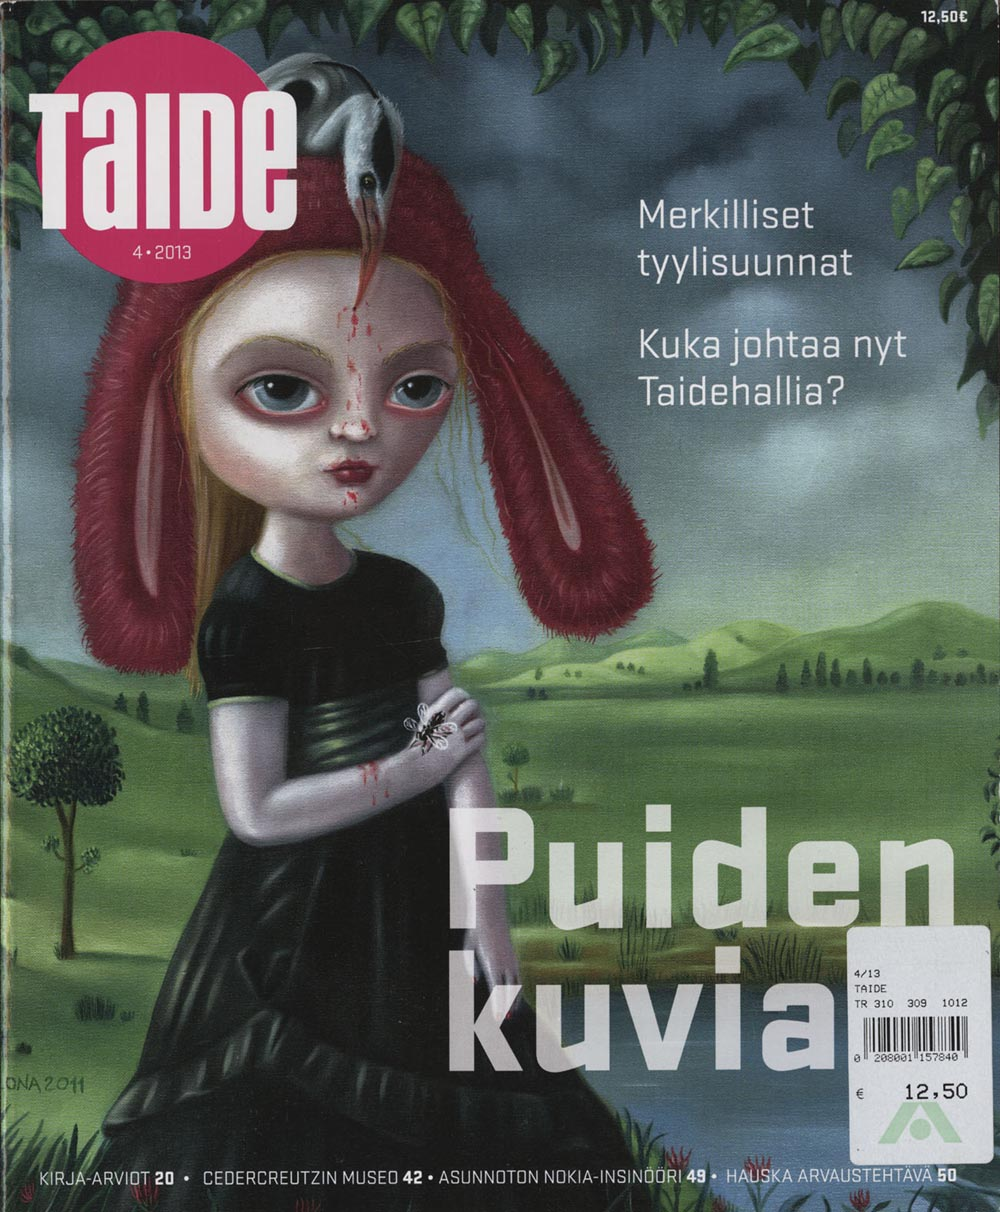 taide art magazine 2013 critiqueOK.jpg